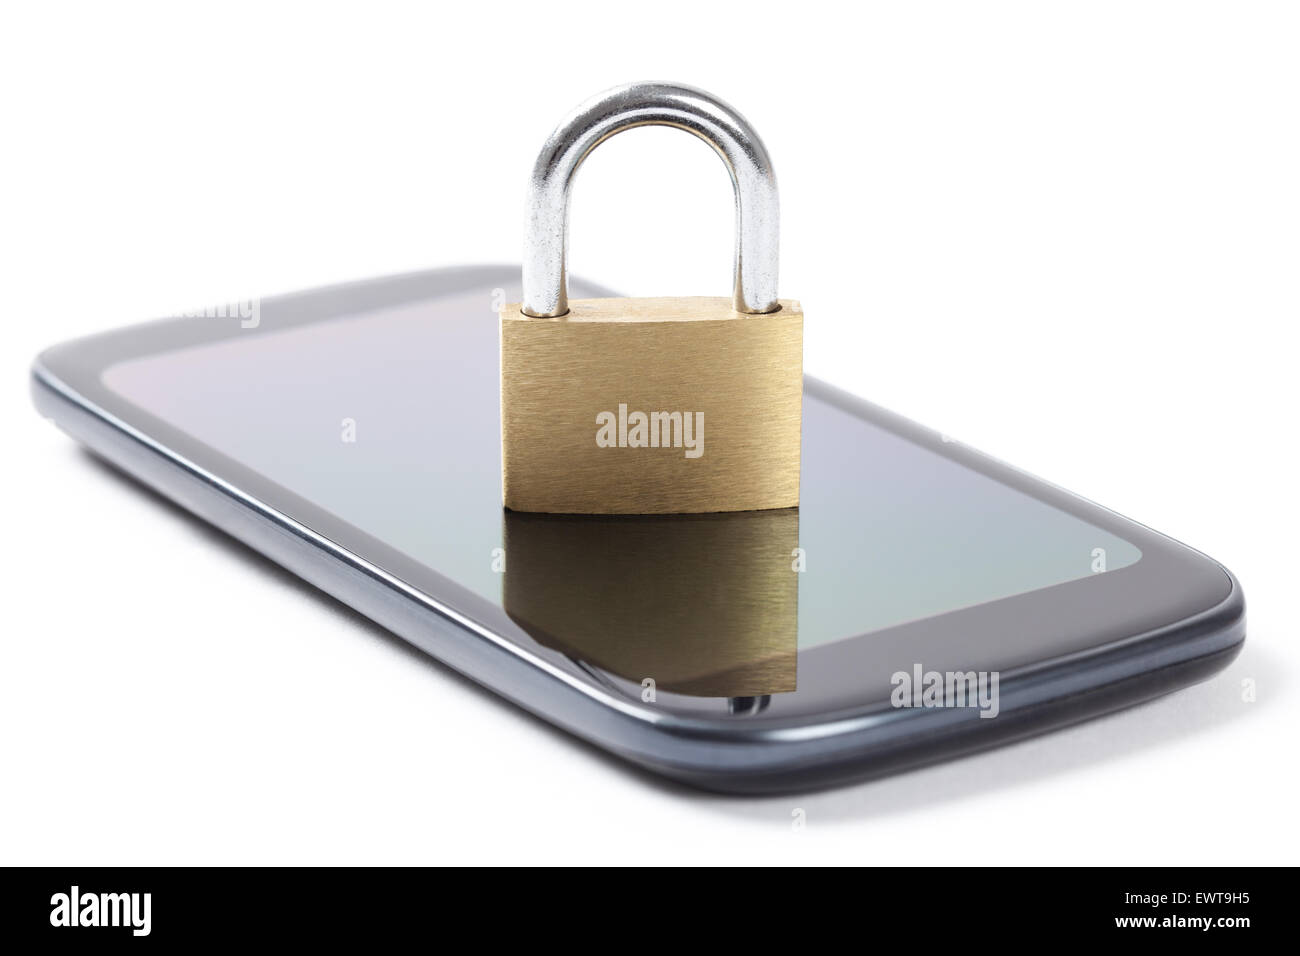 Locked padlock put on a phone's screen isolated on white background. - Stock Image